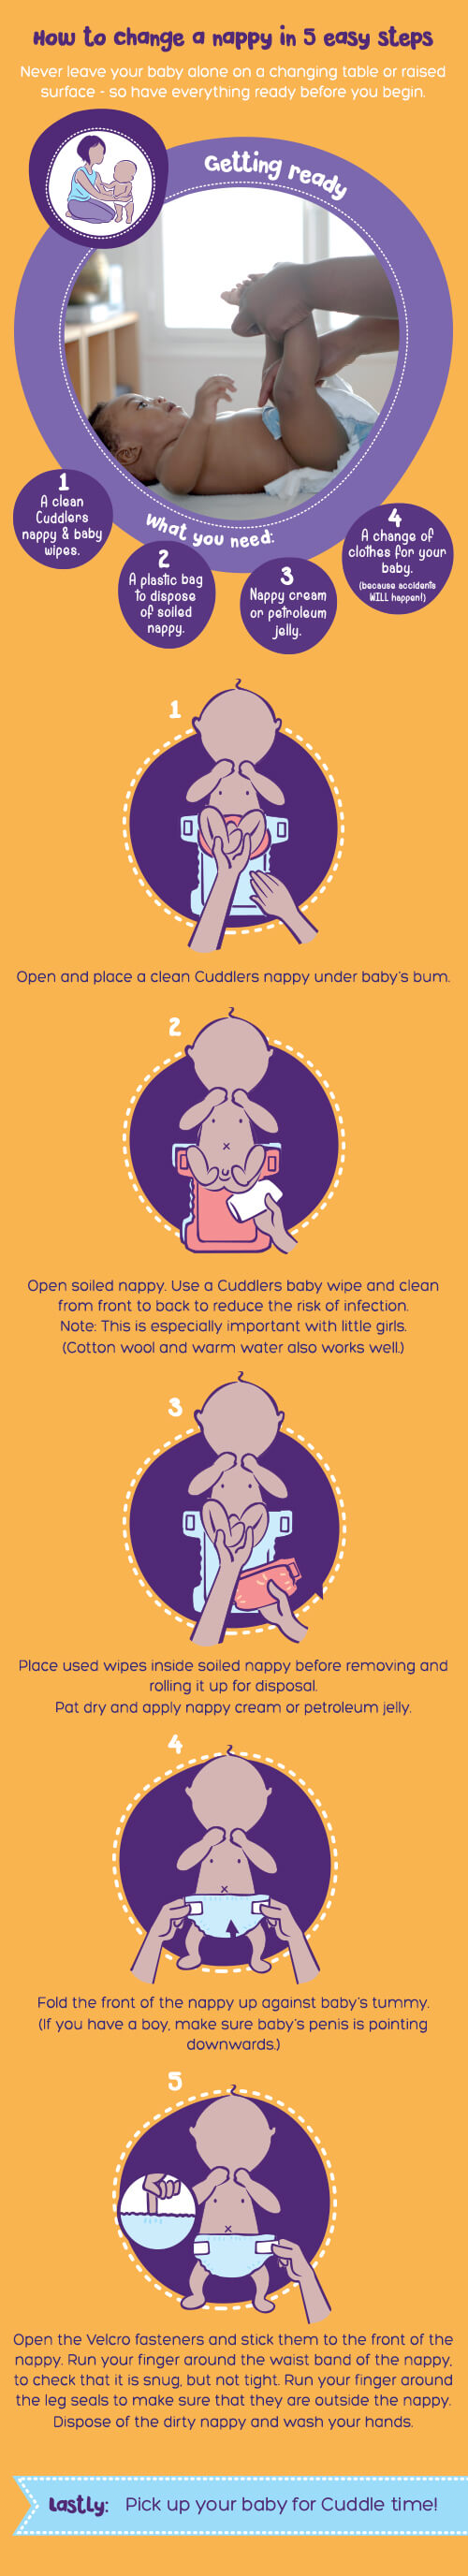 Cuddlers-Tips-Milestones_Mobile-v1